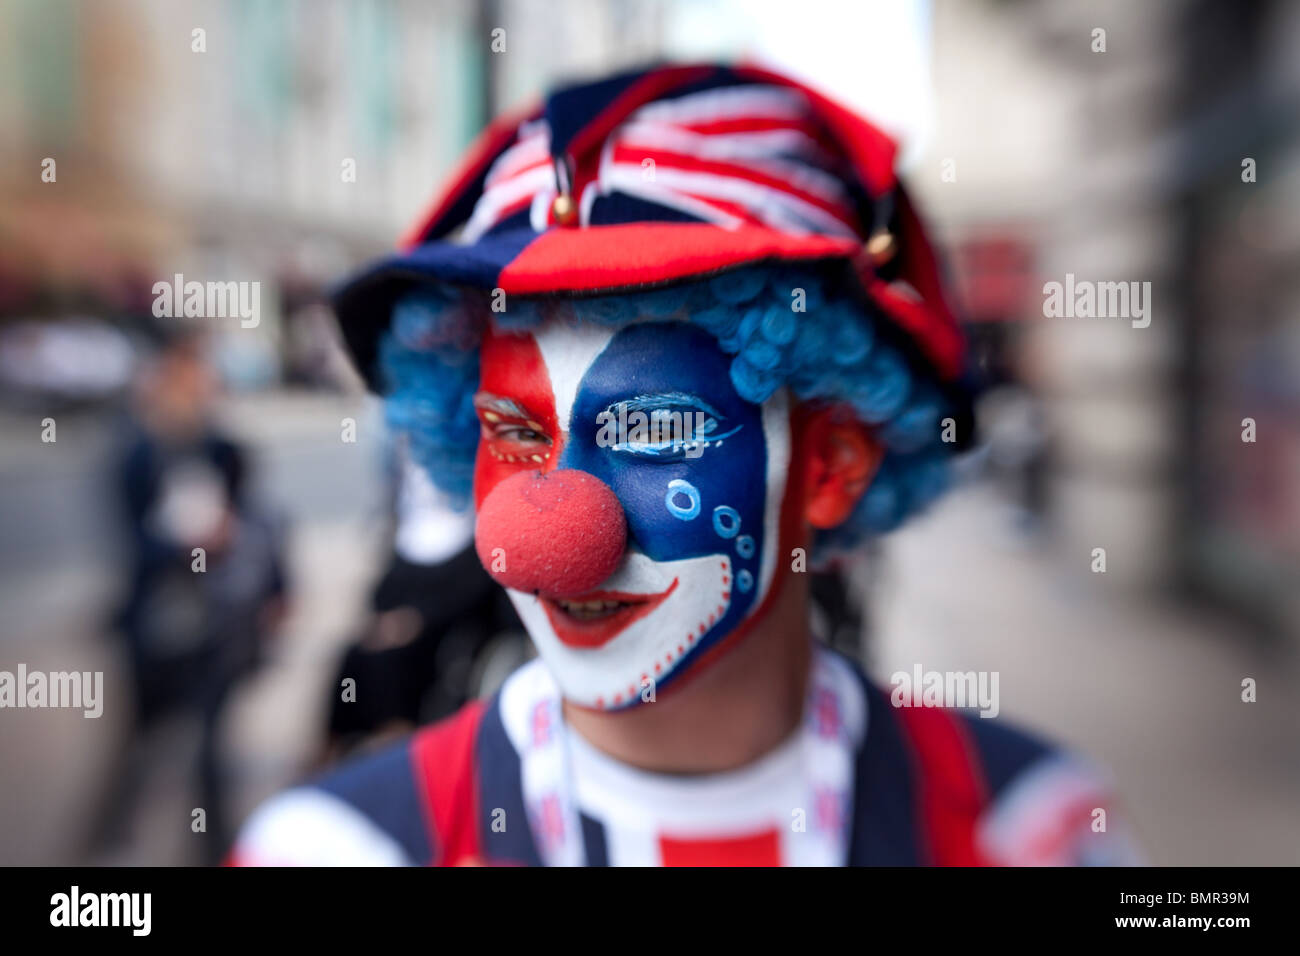 A clown dressed in the colours of the British flag in Piccadilly Circus, London, England. - Stock Image